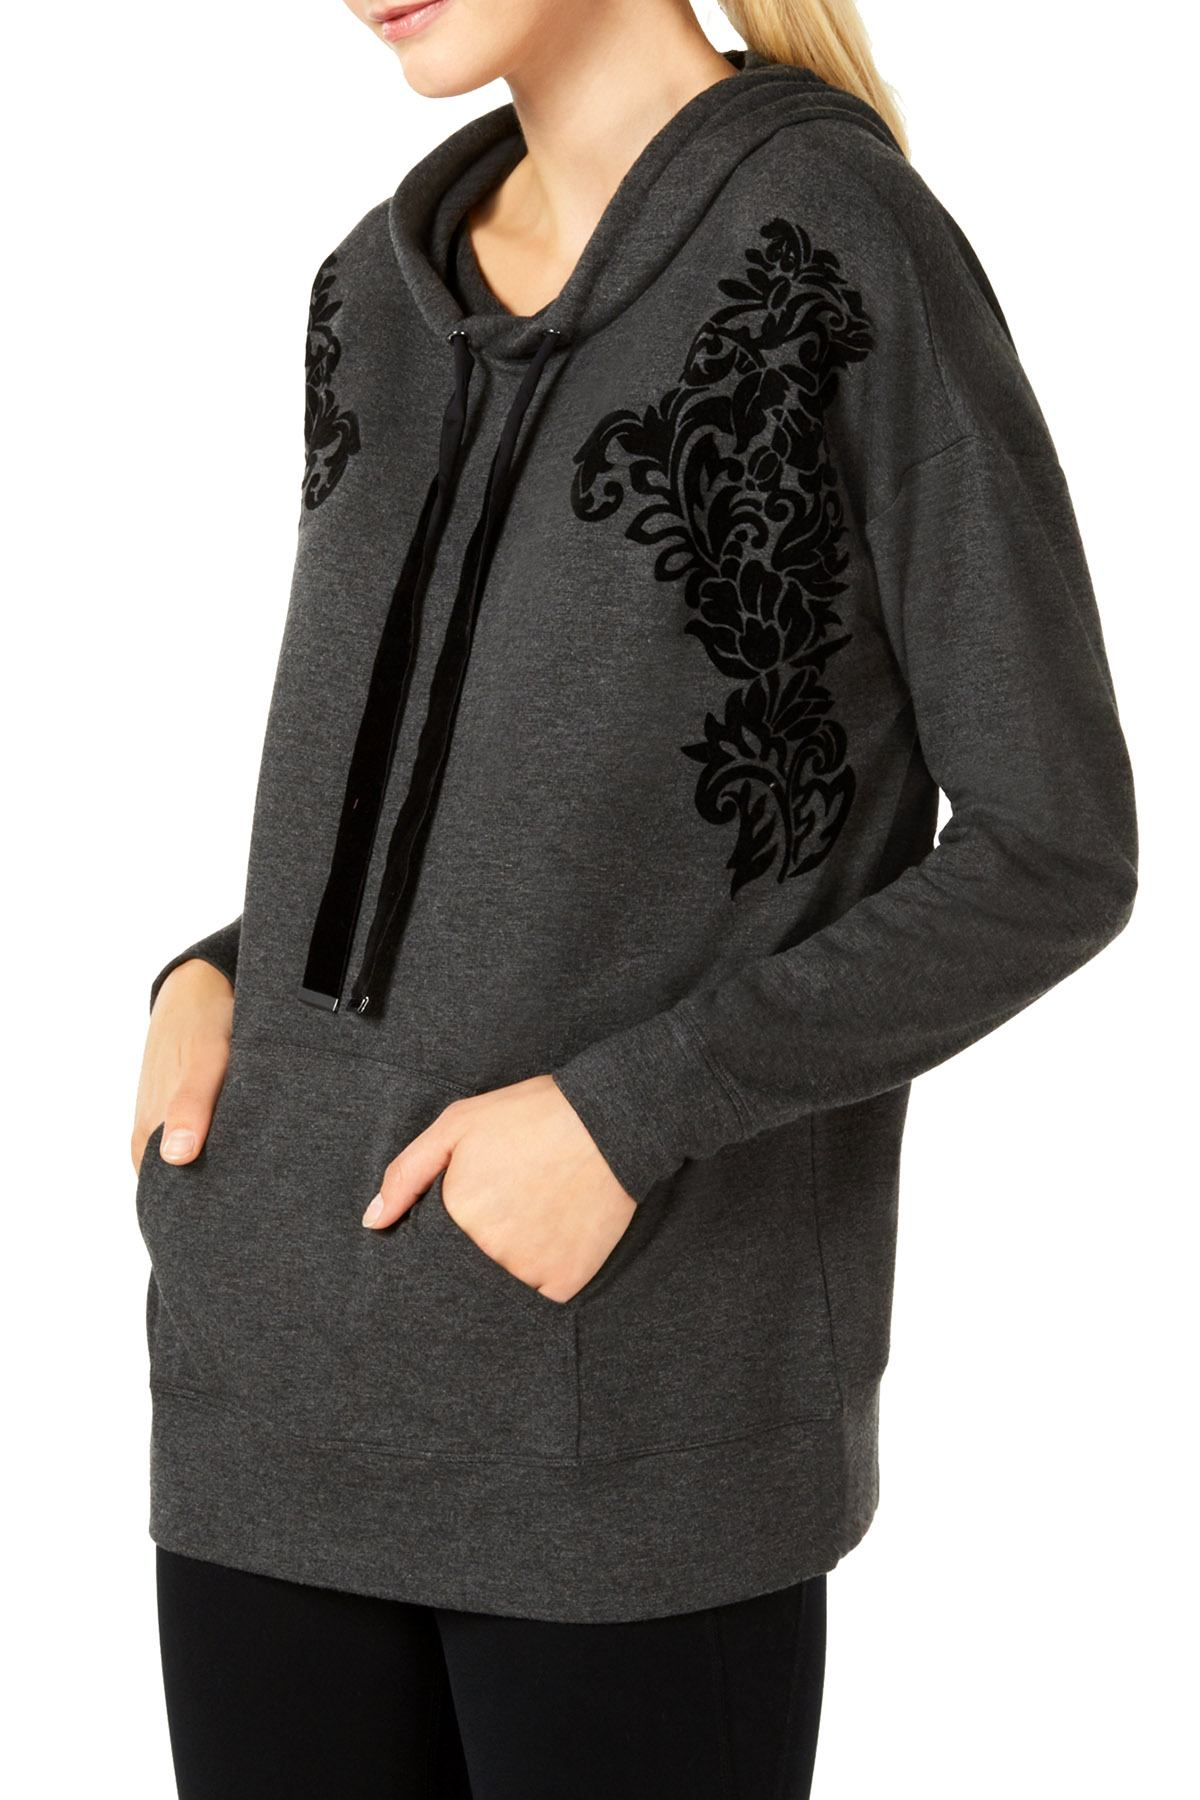 Ideology Charcoal Heather Flocked Hoodie